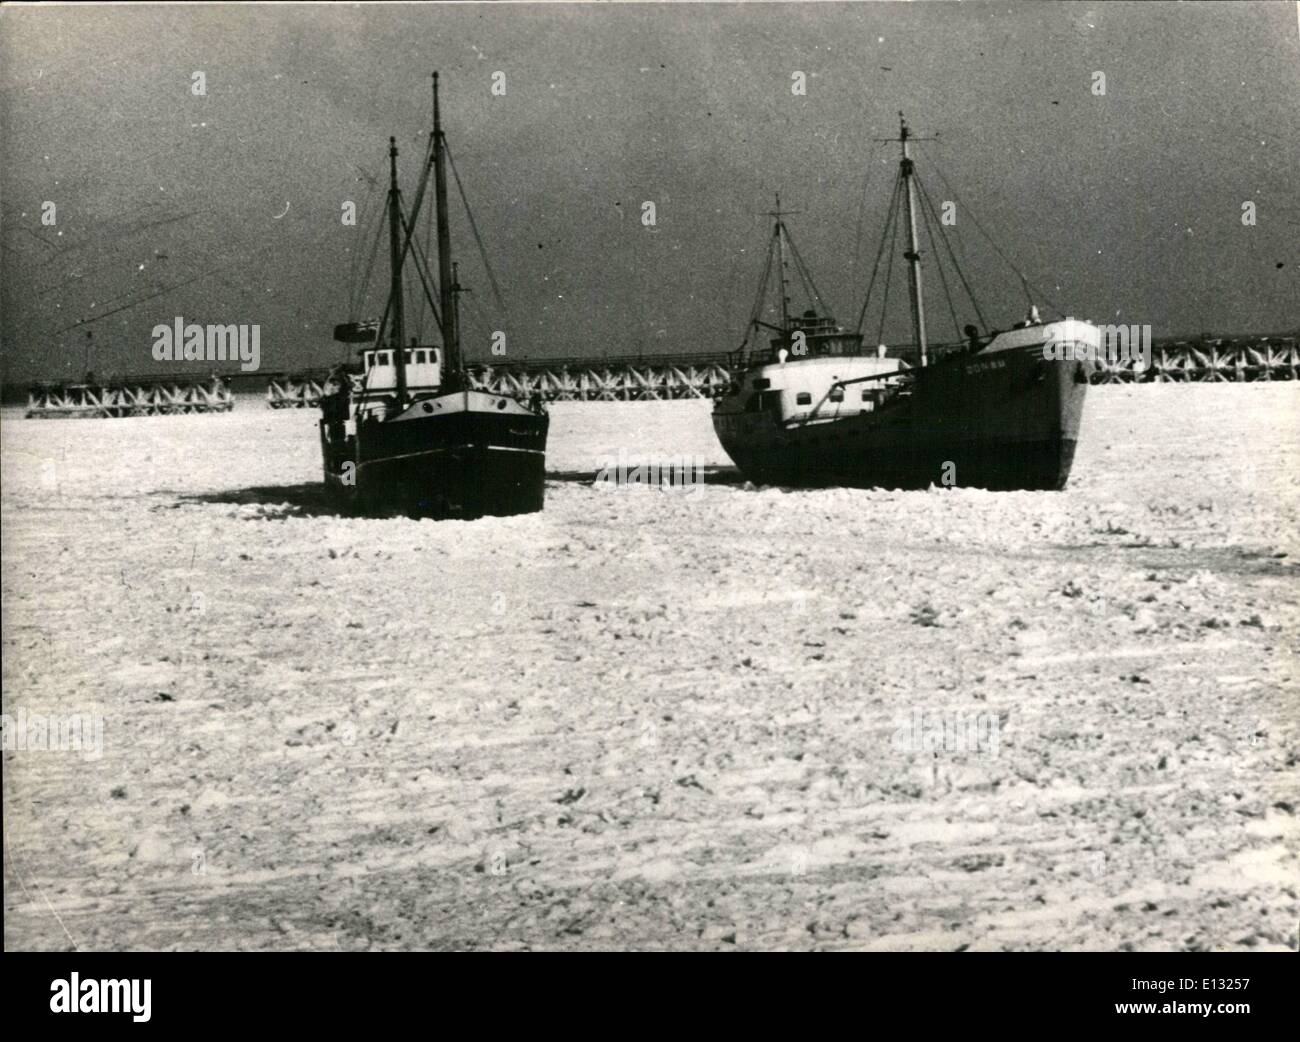 Feb. 26, 2012 - Sea frozen over in Dunkirk Harbour – Two ships ice-bound in the Dunkirk Harbour yesterday. Stock Photo